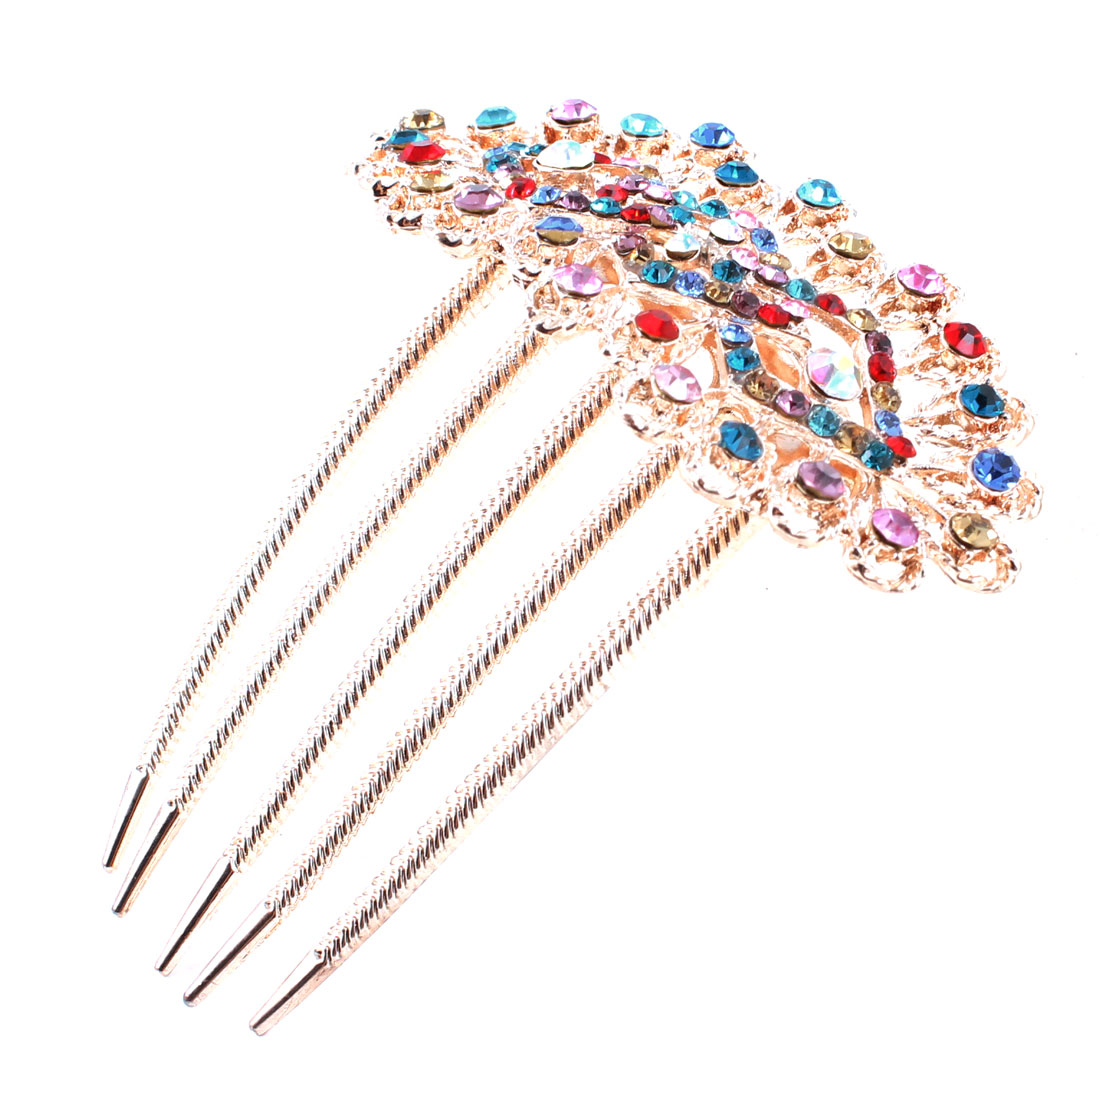 Shiny Gold Tone Metal 5 Teeth Design Hair Comb Clip Decor for Women